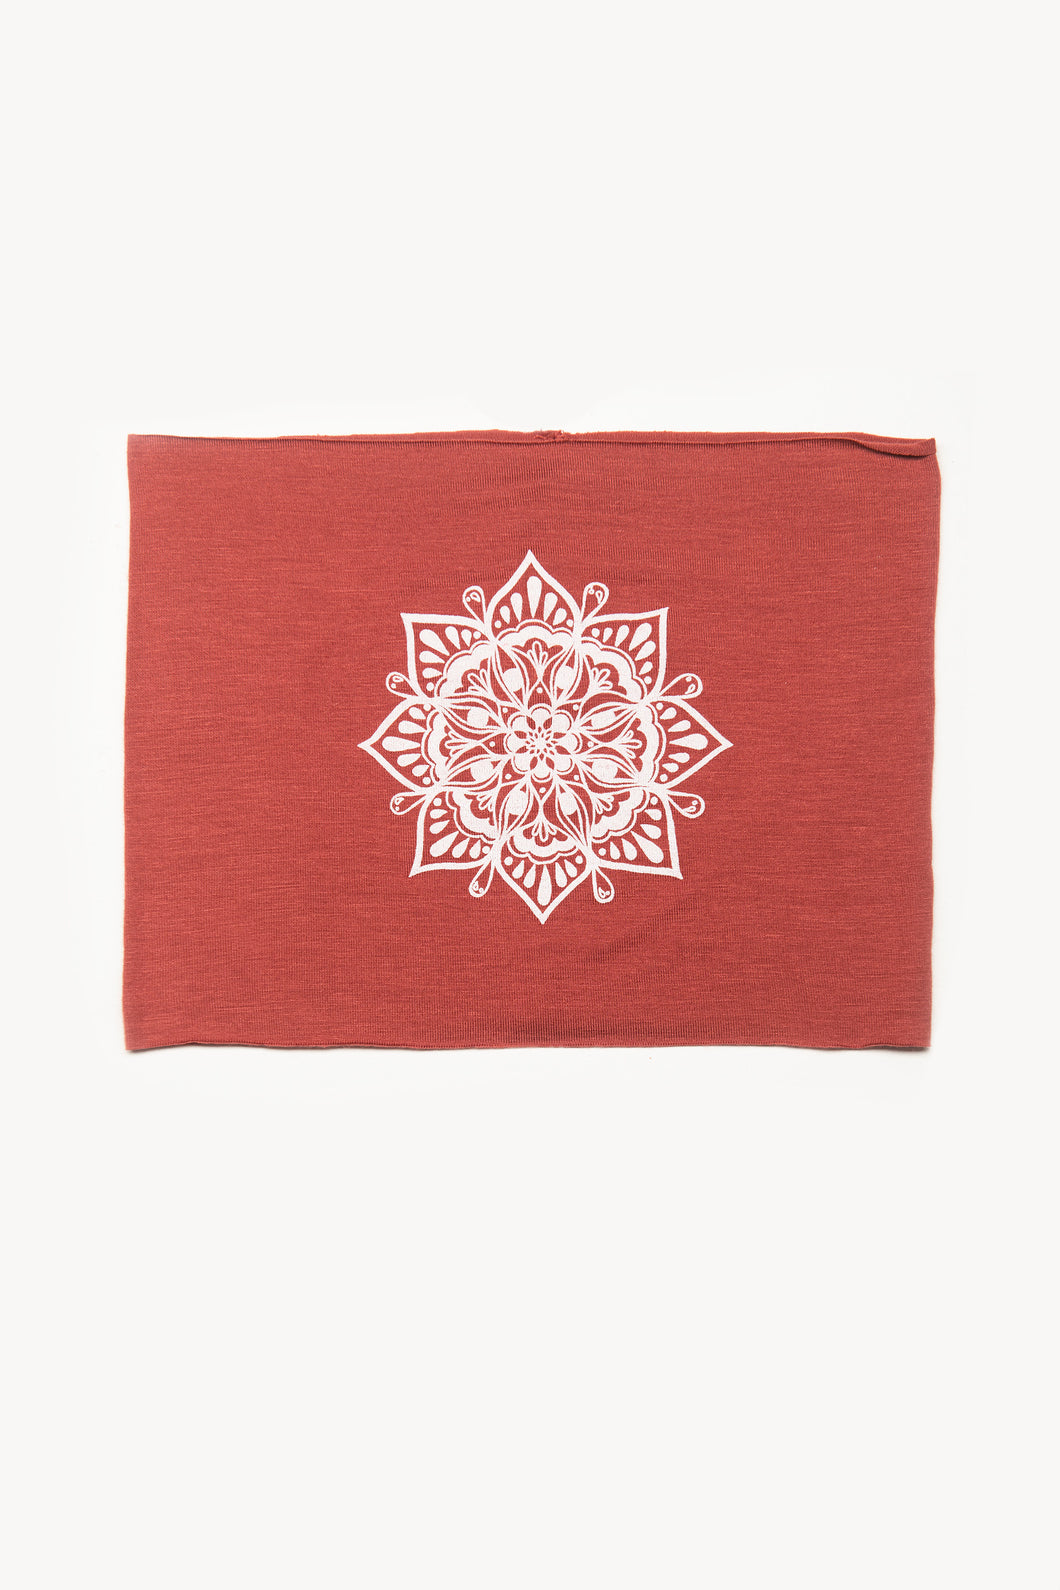 Eye See You by Melody Tunks - brick red fabric with white ink - mandala design